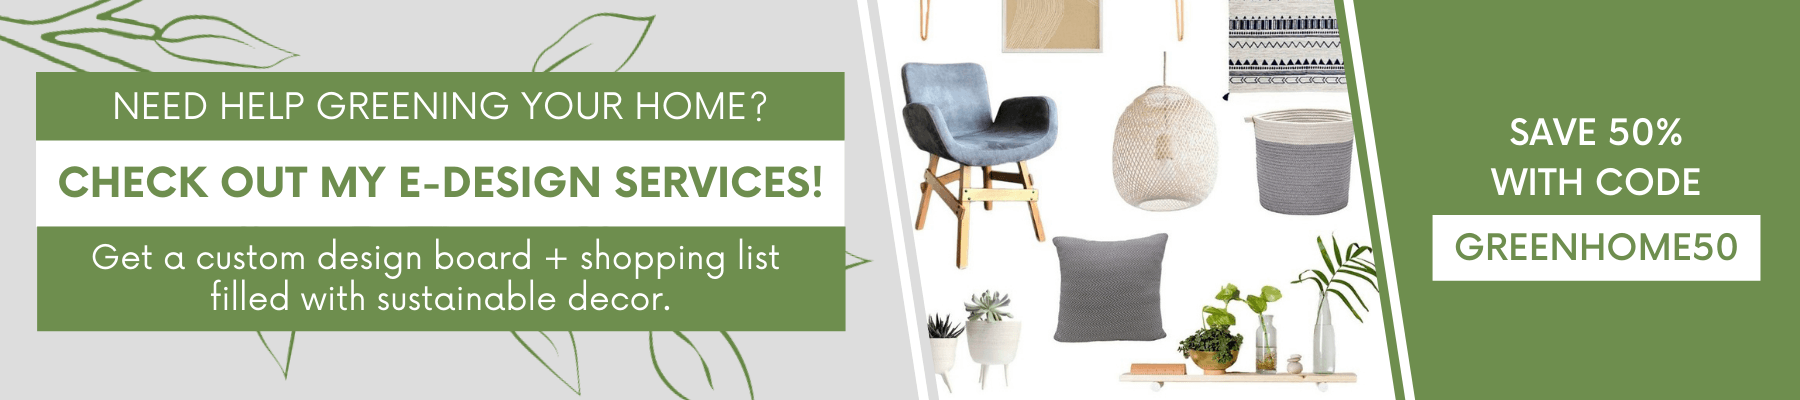 Need help greening your home? Check out my e-design services! Click here to get a custom design board and shopping list filled with sustainable decor.